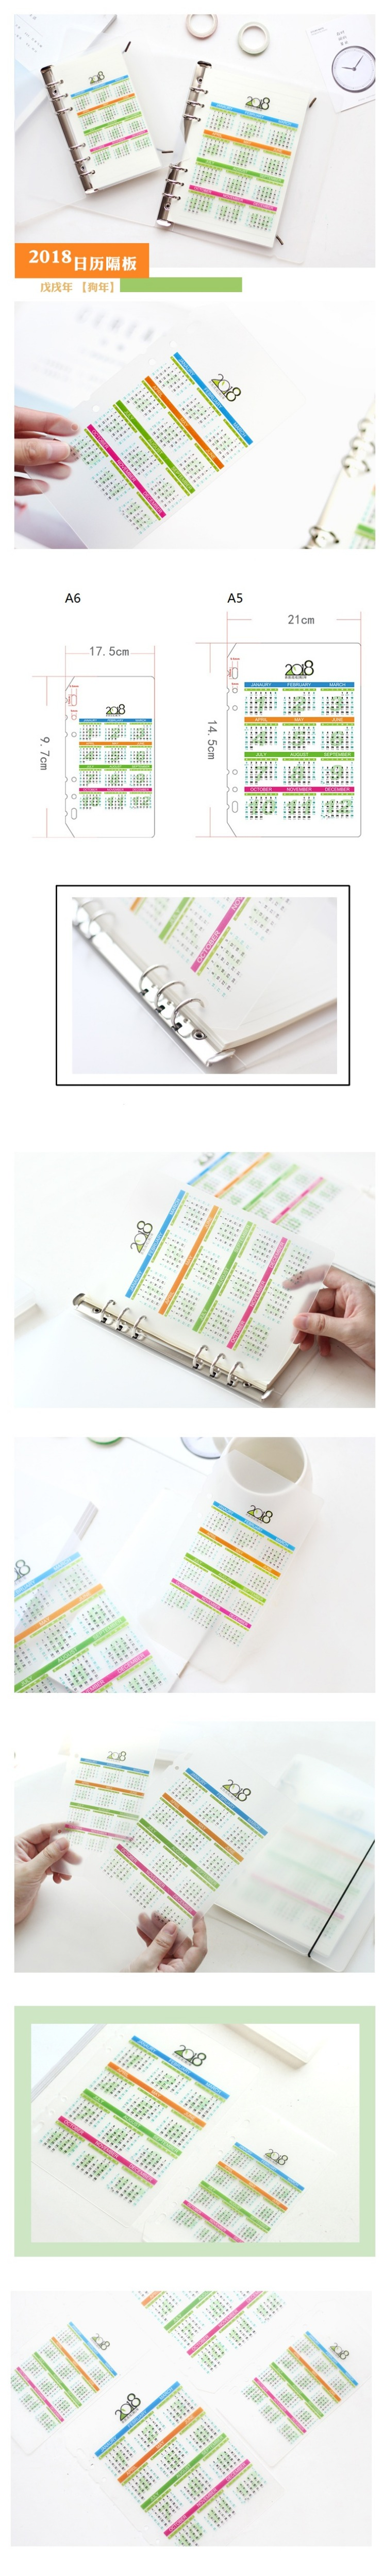 2018 A5A6 Calendar Spacer Plate Diario Binder Planner's Separator Board  Office School Supplies Spiral Notebook's Index Page - us320